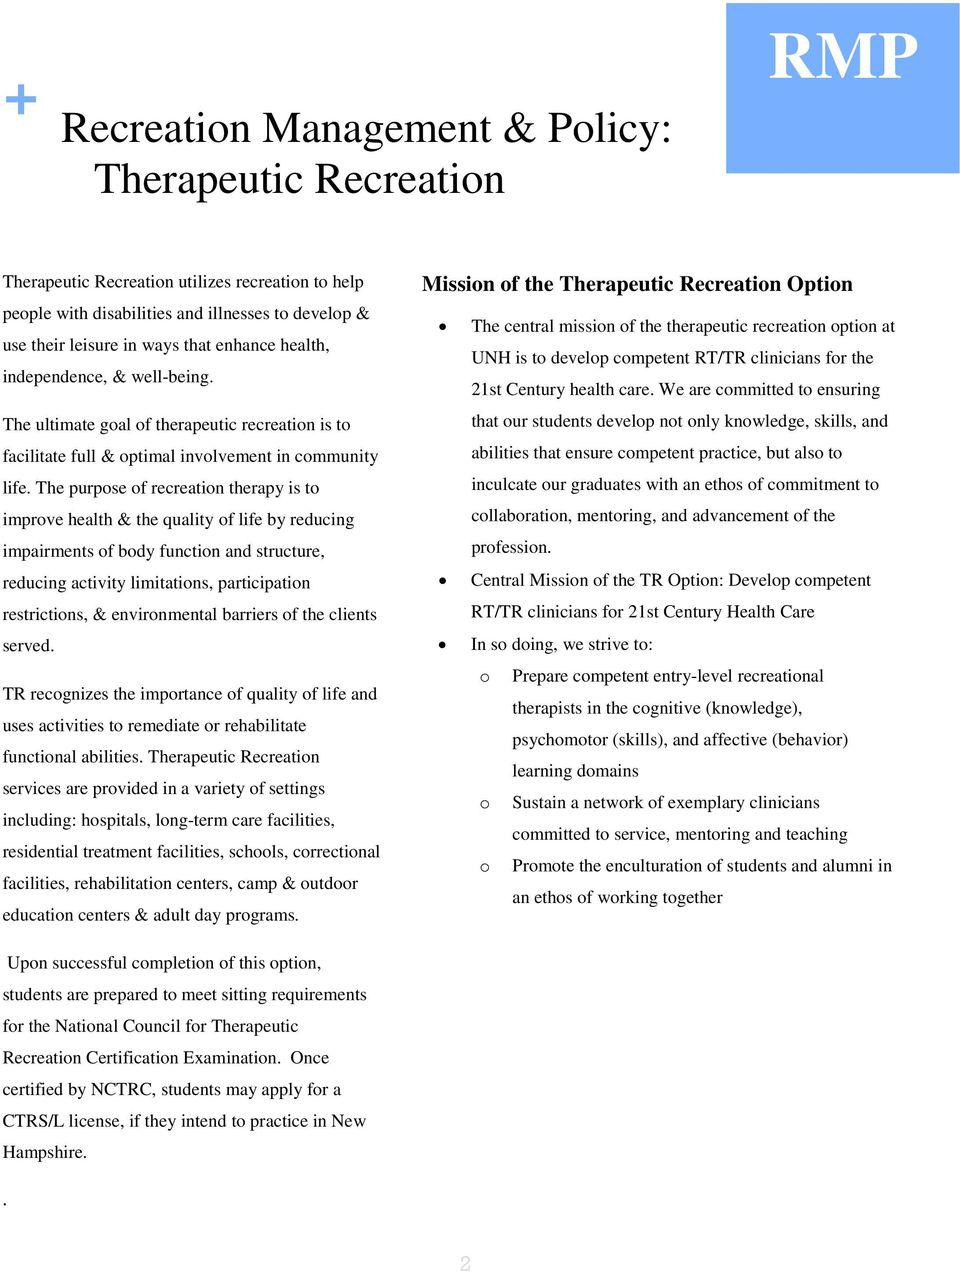 Recreation Management Policy Pdf